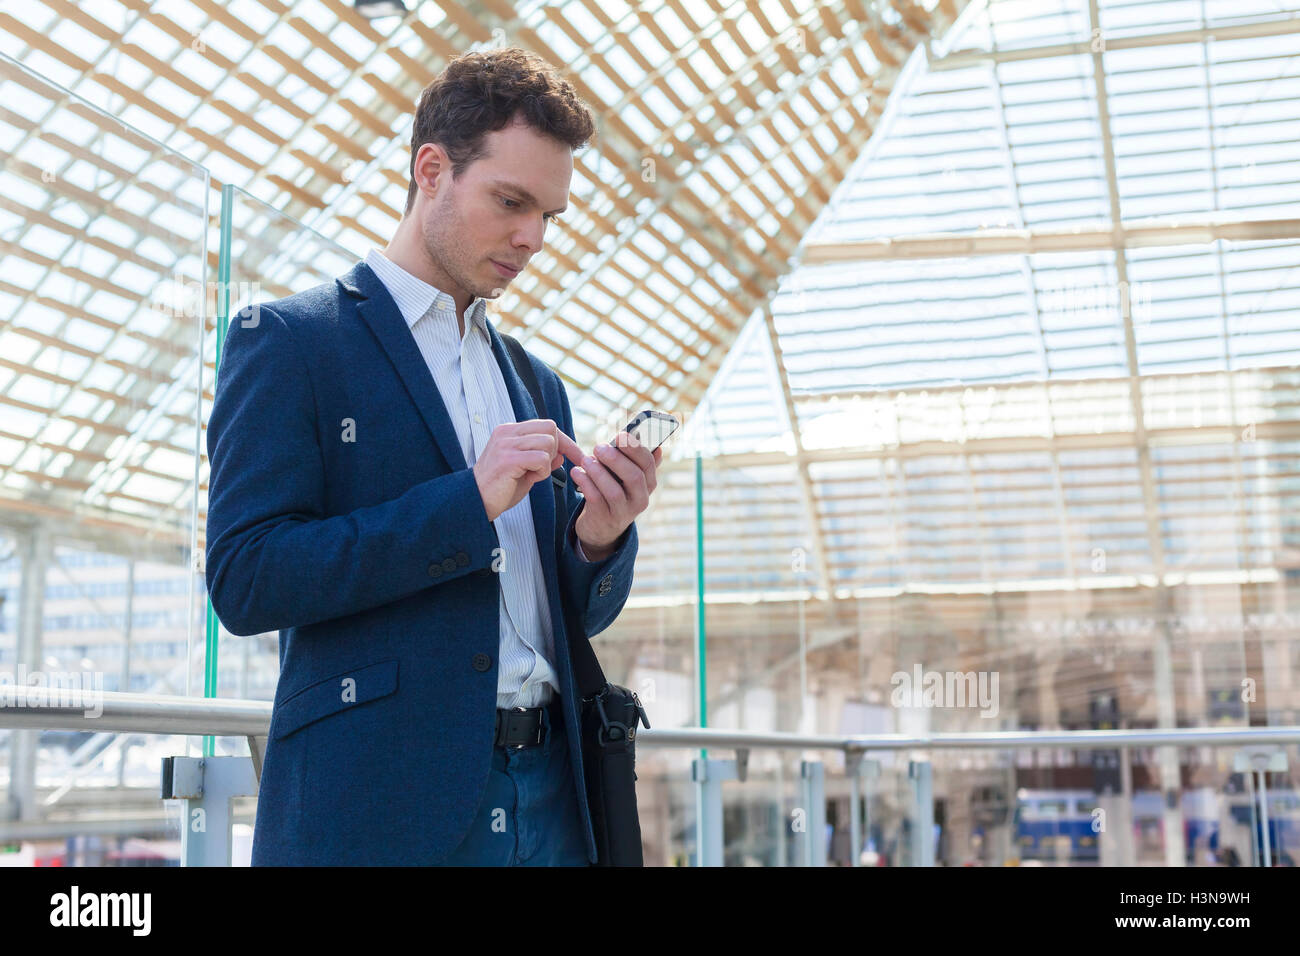 Businessman writing a message on smartphone, train station waiting lounge in background - Stock Image